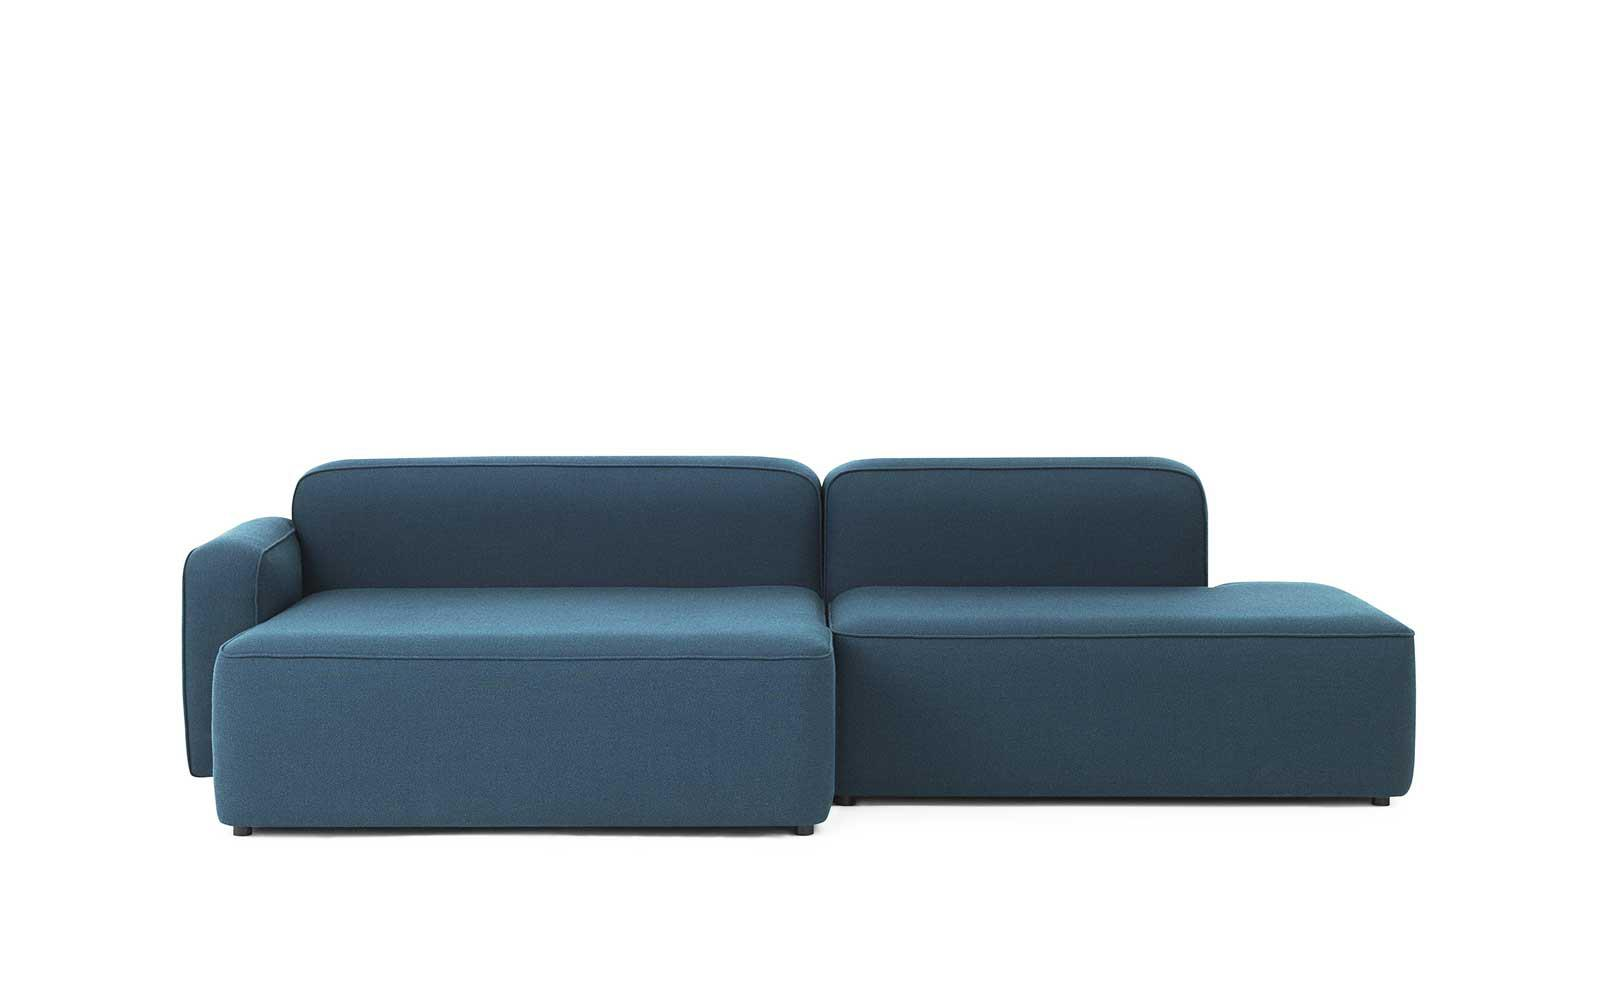 Sofa With Chaise Lounge Rope Sofa Chaise Lounge Left Fame Hybrid